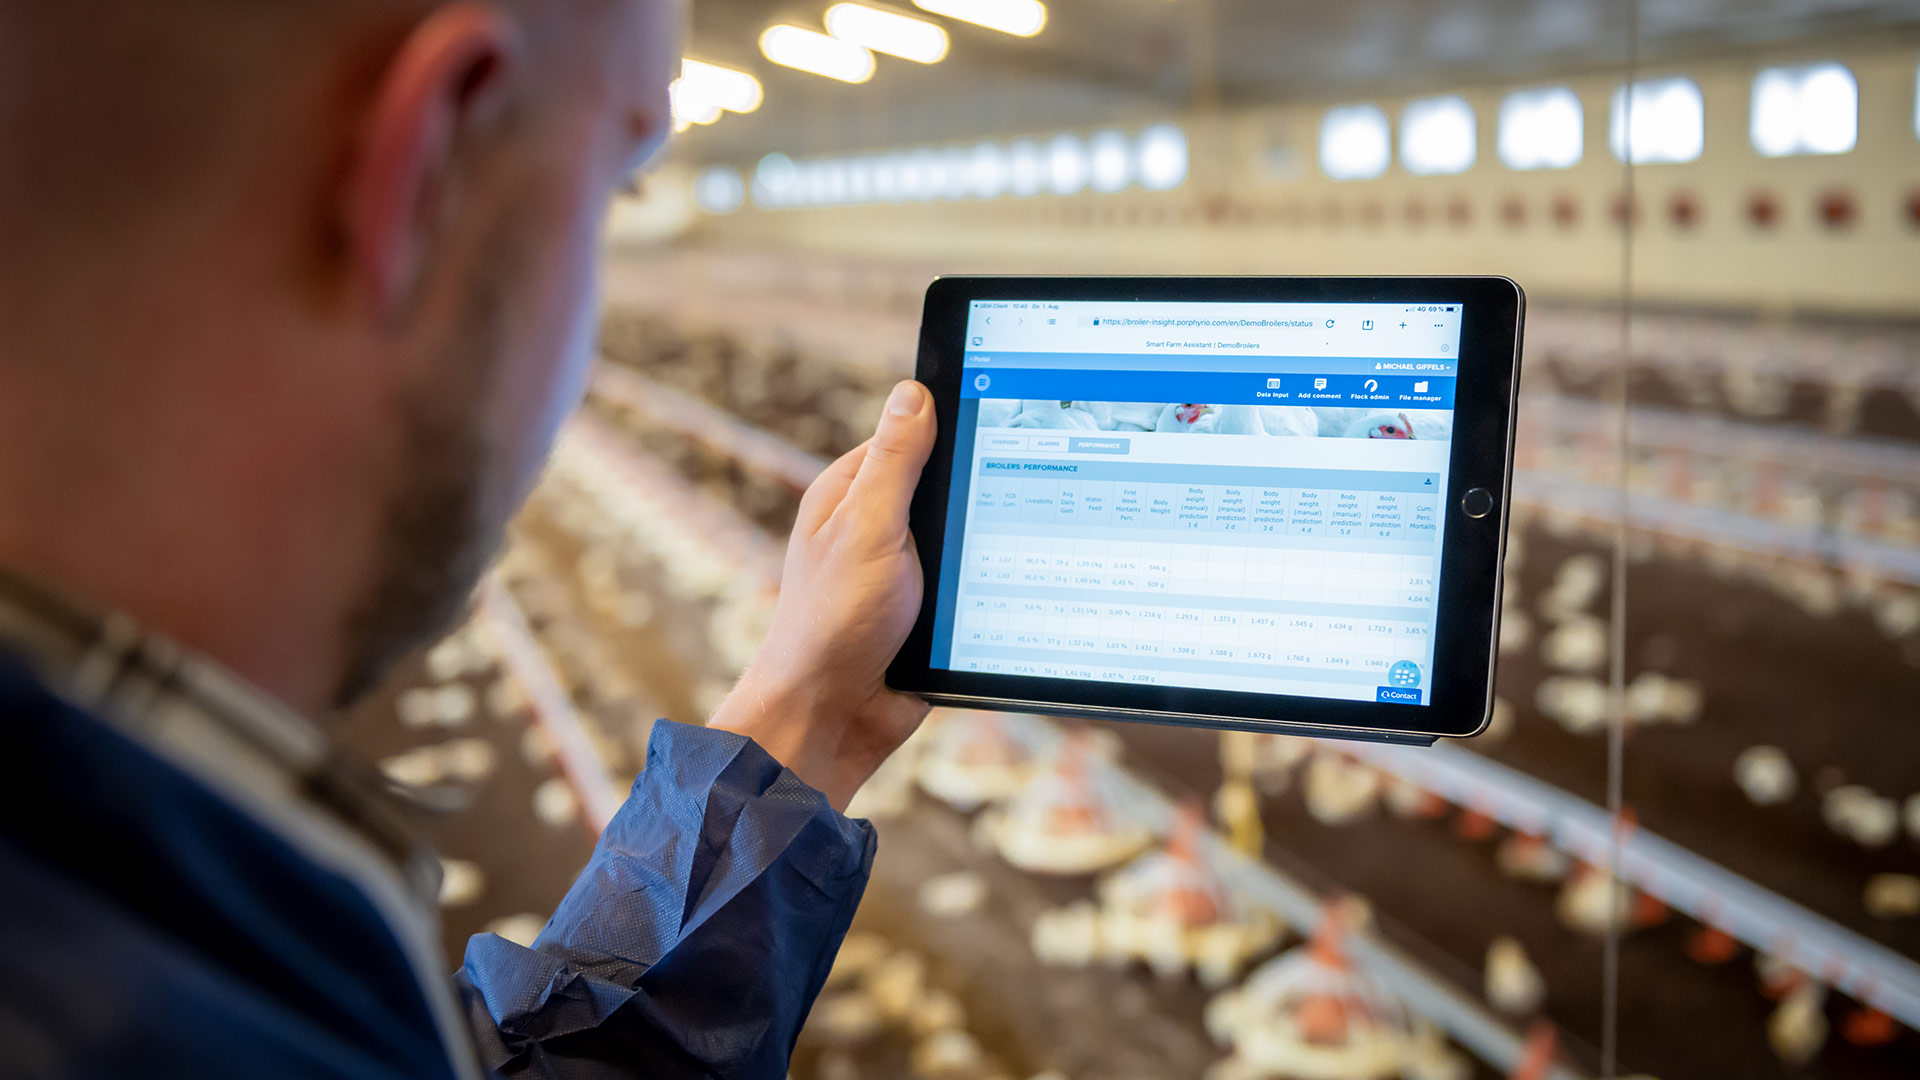 Evonik PLF takes livestock farming into the digital era